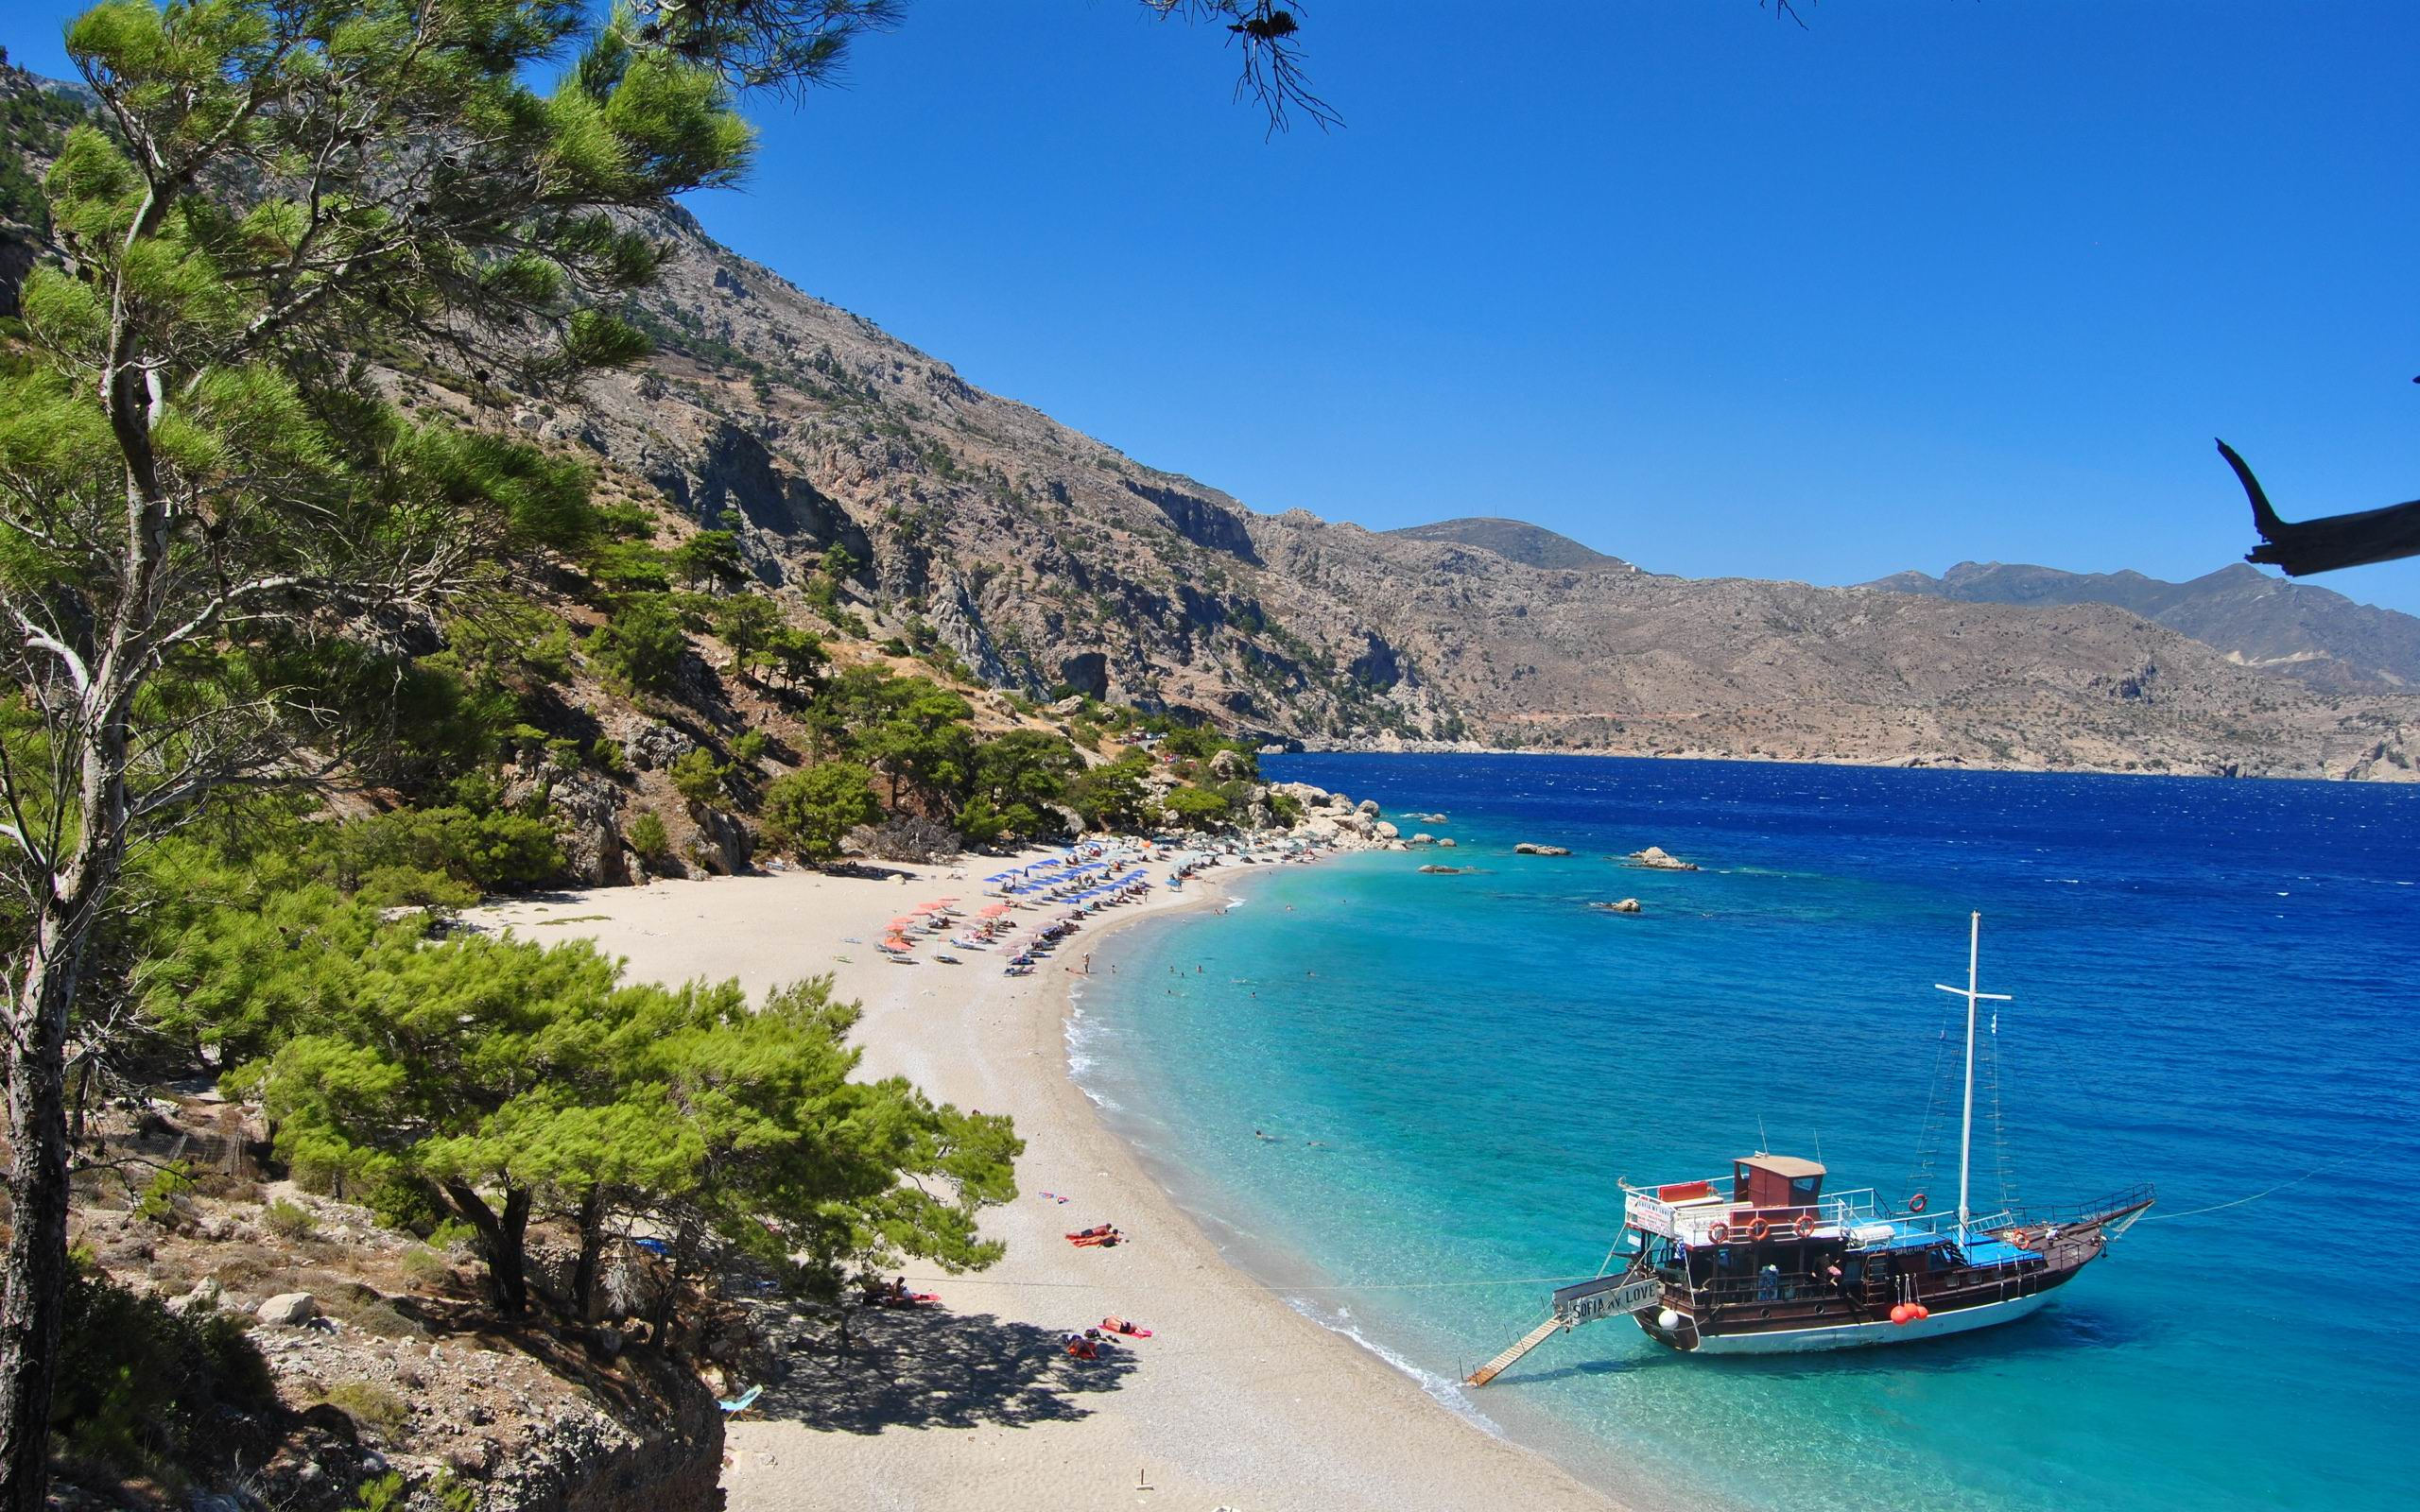 Greece Beach Wallpaper: First Time In Greece? Here Are 10 Experiences You Simply